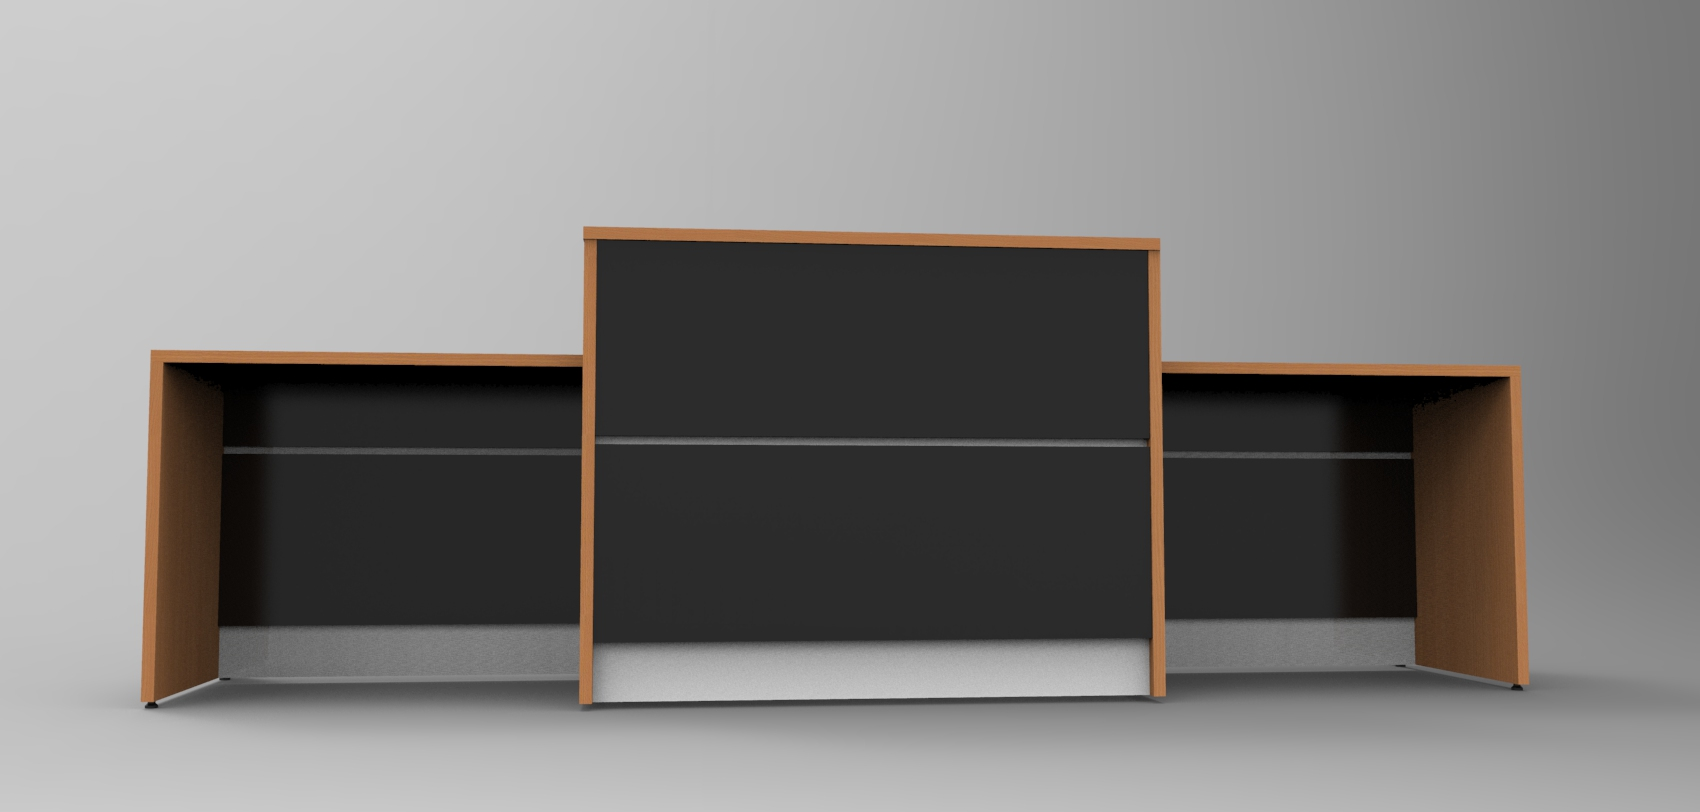 Image 12UB - DDA Union reception desk finished in Beech and Black